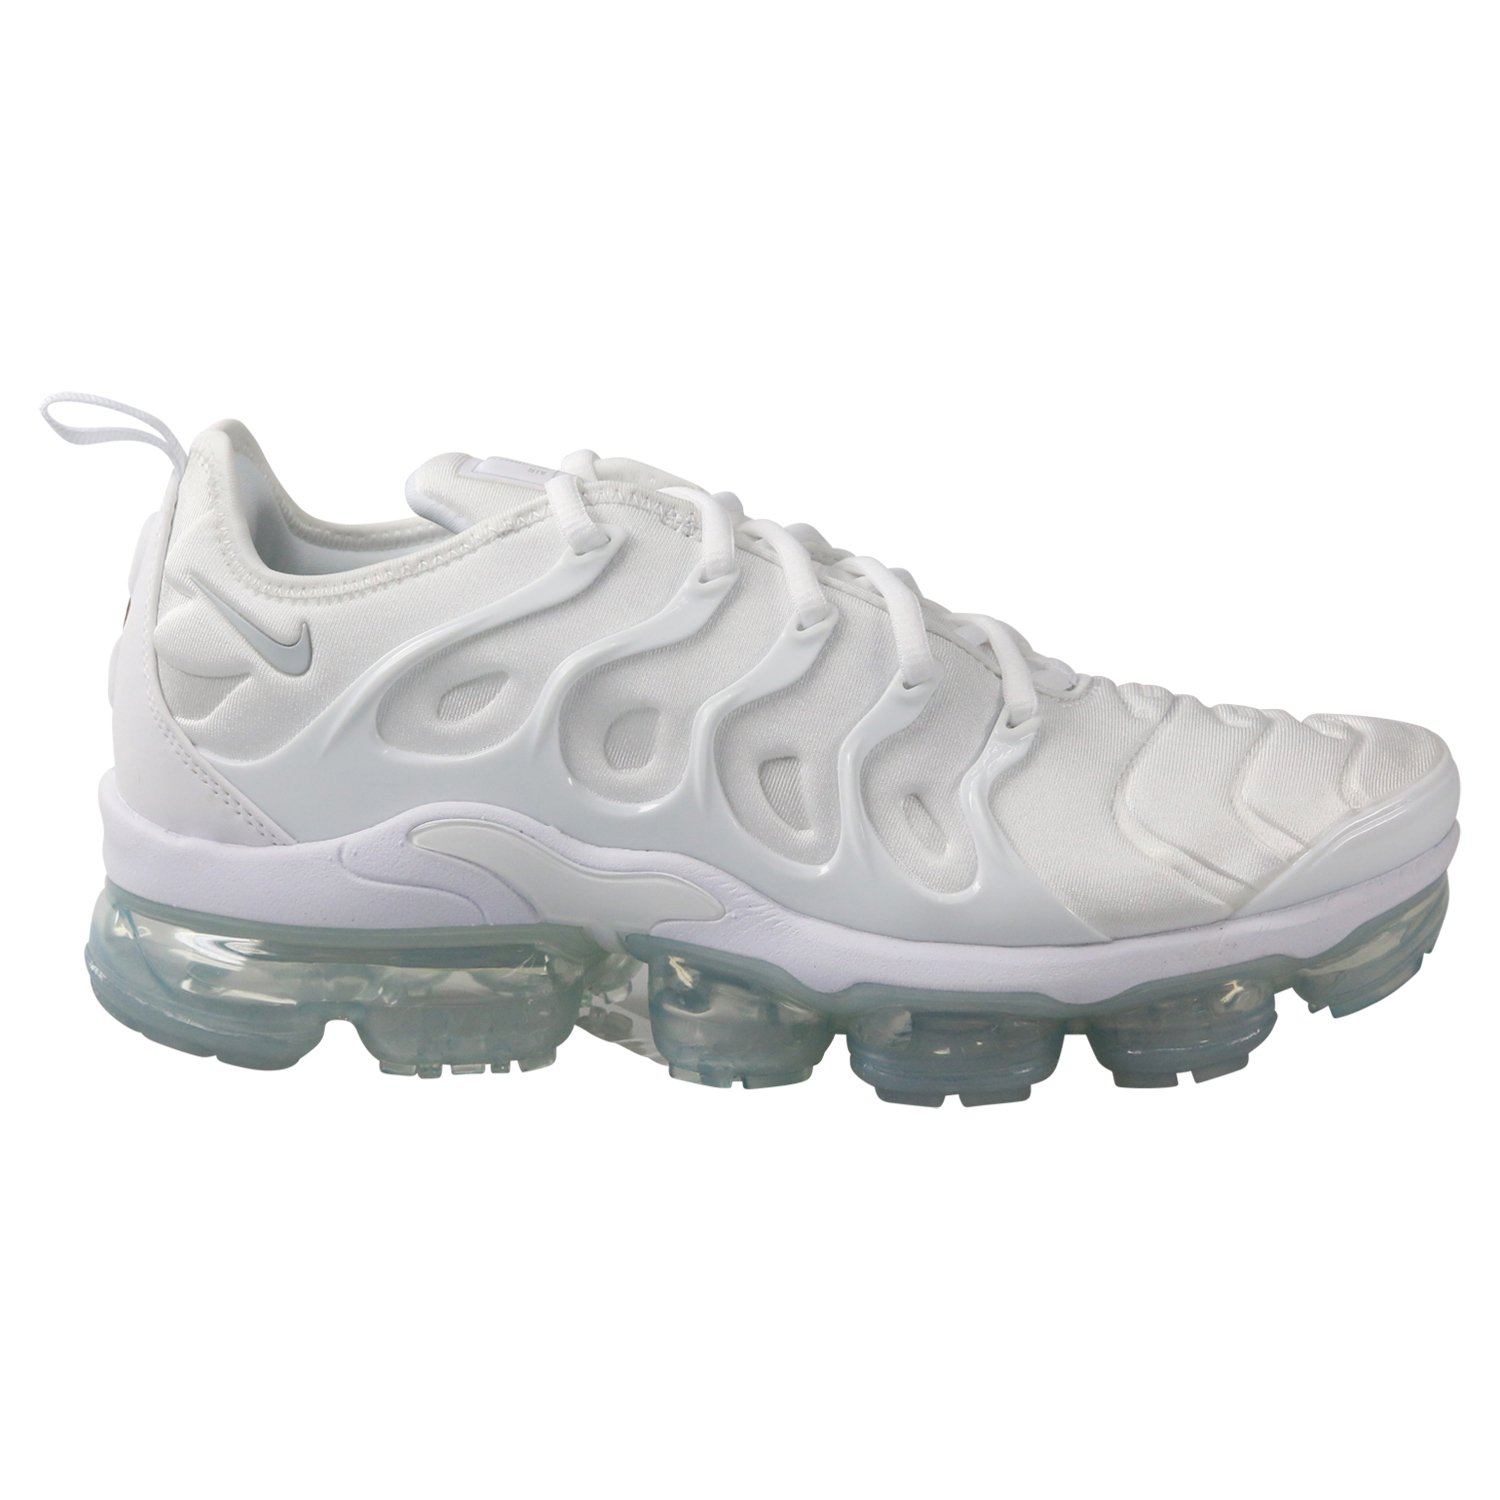 d928b779cb Galleon - NIKE Men's Air Vapormax Plus, White/Pure Platinum, 11.5 M US